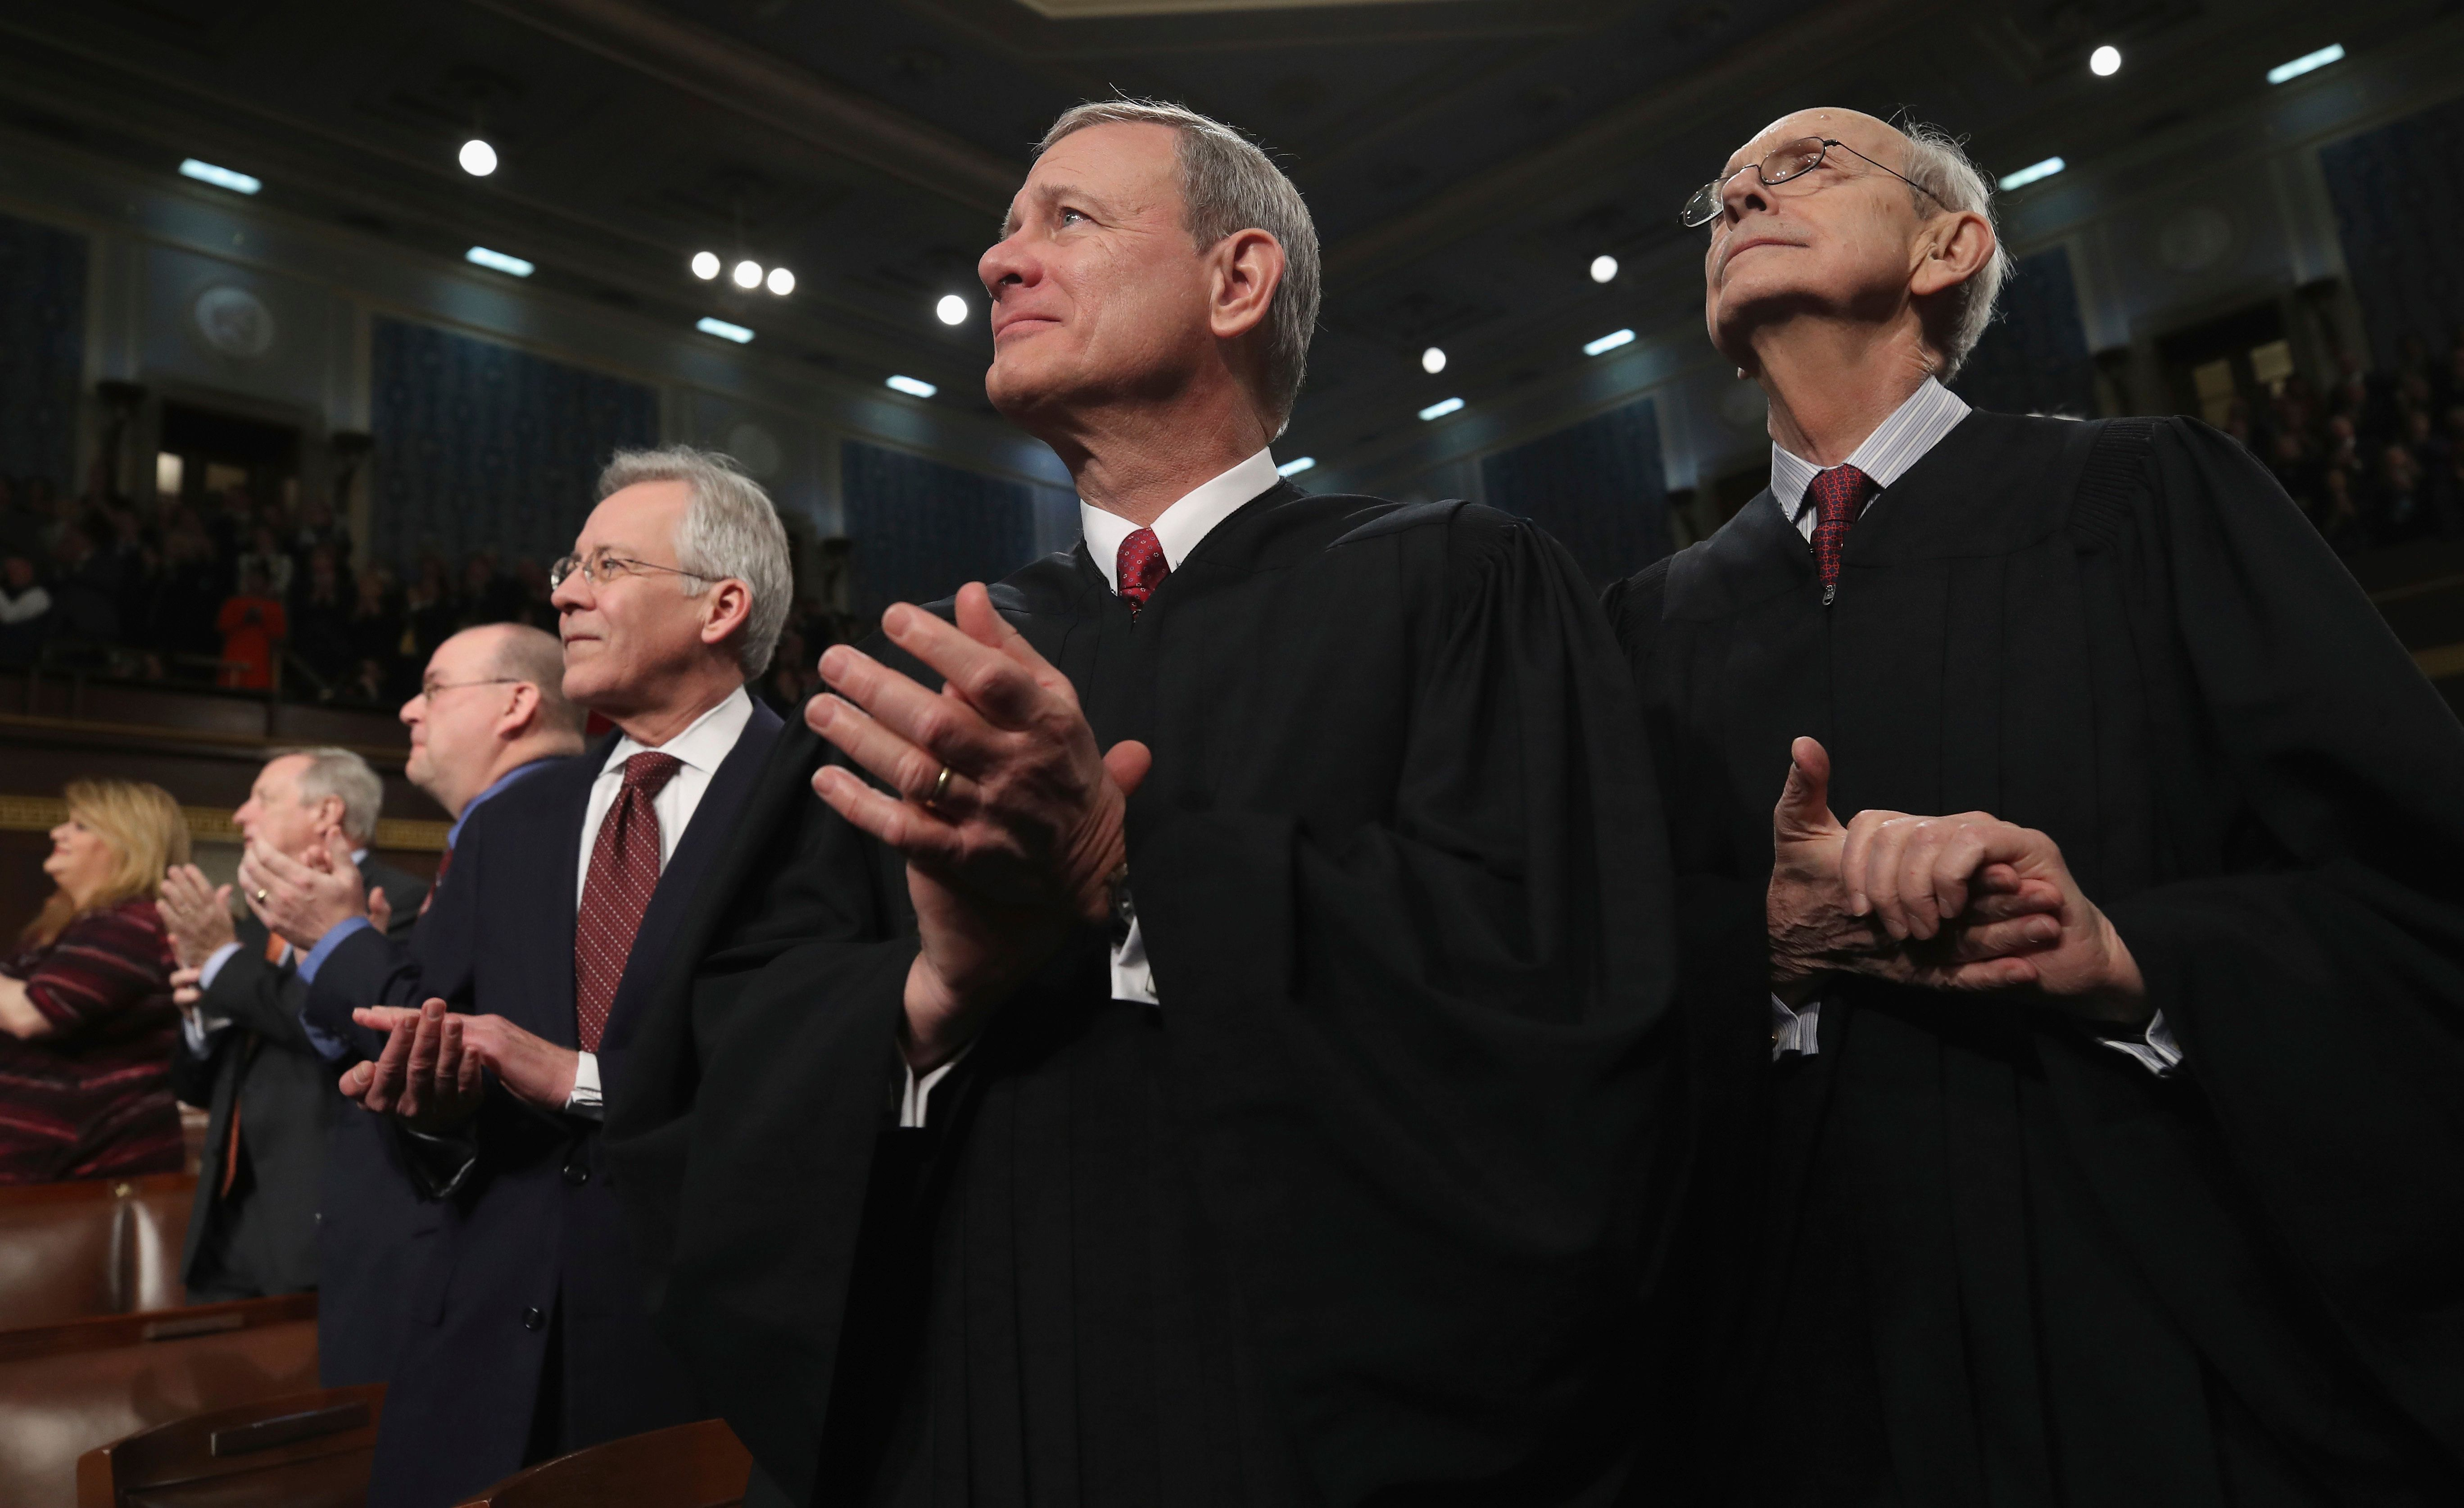 U.S. Supreme Court Chief Justice John G. Roberts, center, and Associate Justice Stephen G. Breyer listen to President Donald Trump's State of the Union address to a joint session of Congress on Capitol Hill in Washington, Tuesday, Jan. 30, 2018. (Win McNamee/Pool via AP)